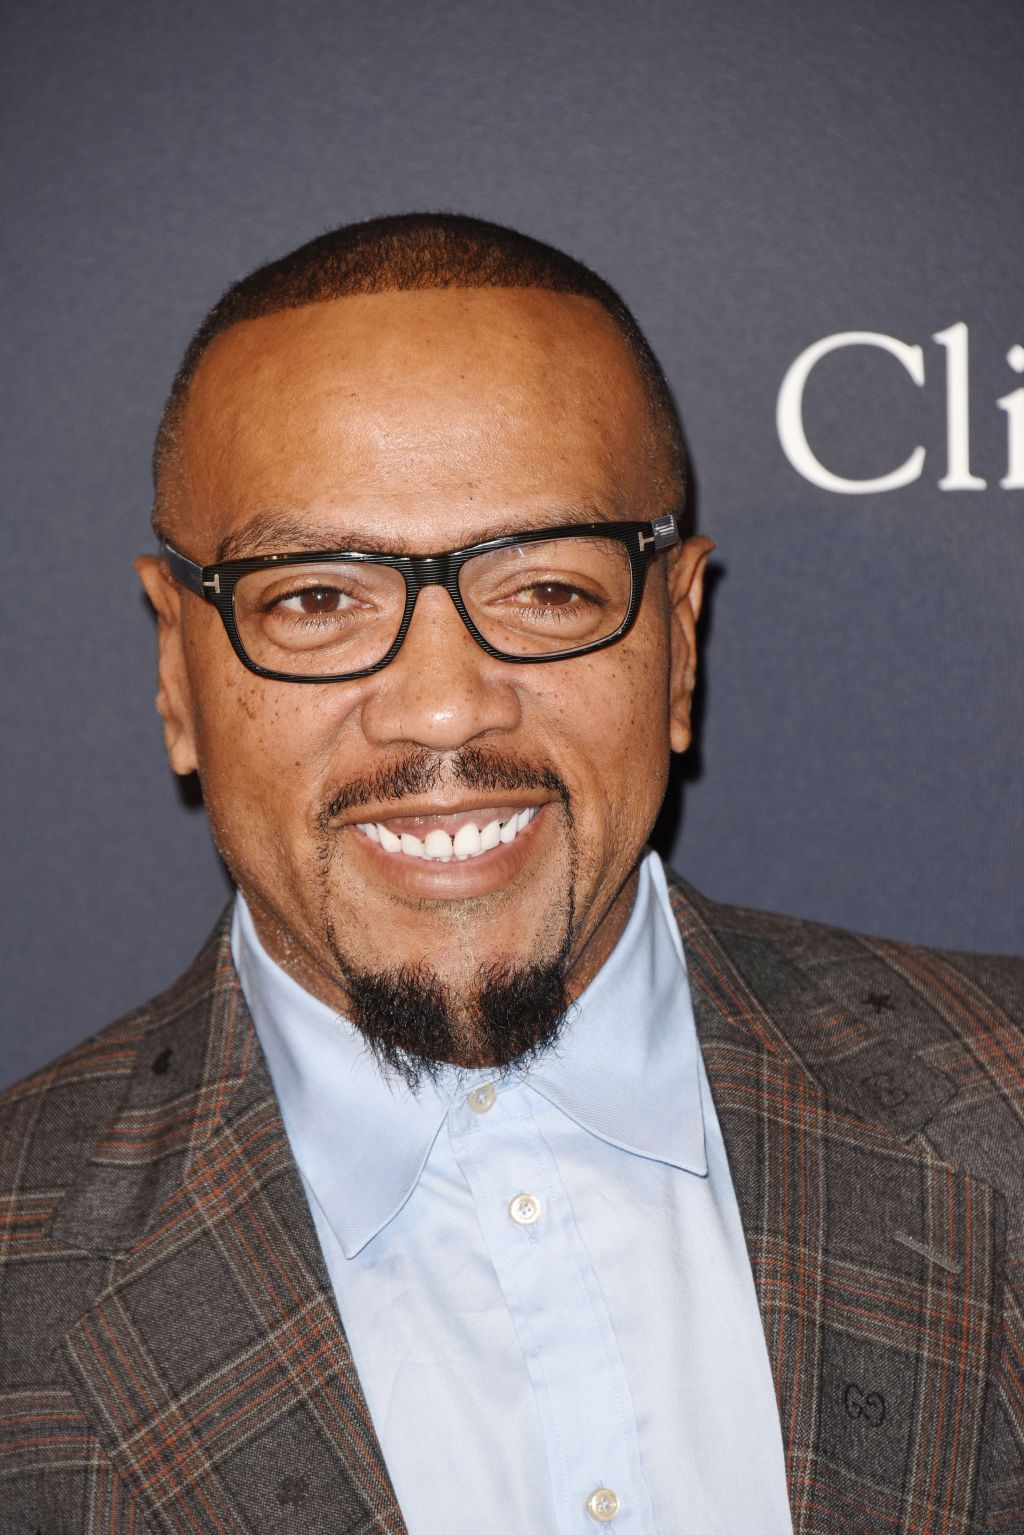 """Timbaland arrives at the Pre GRAMMY Gala and GRAMMY Salute to Industry Icons Honoring Sean """"Diddy"""" Combs at The Beverly Hilton Hotel on January 25, 2020 in Beverly Hills, California\n© Jill Johnson/jpistudios.com"""